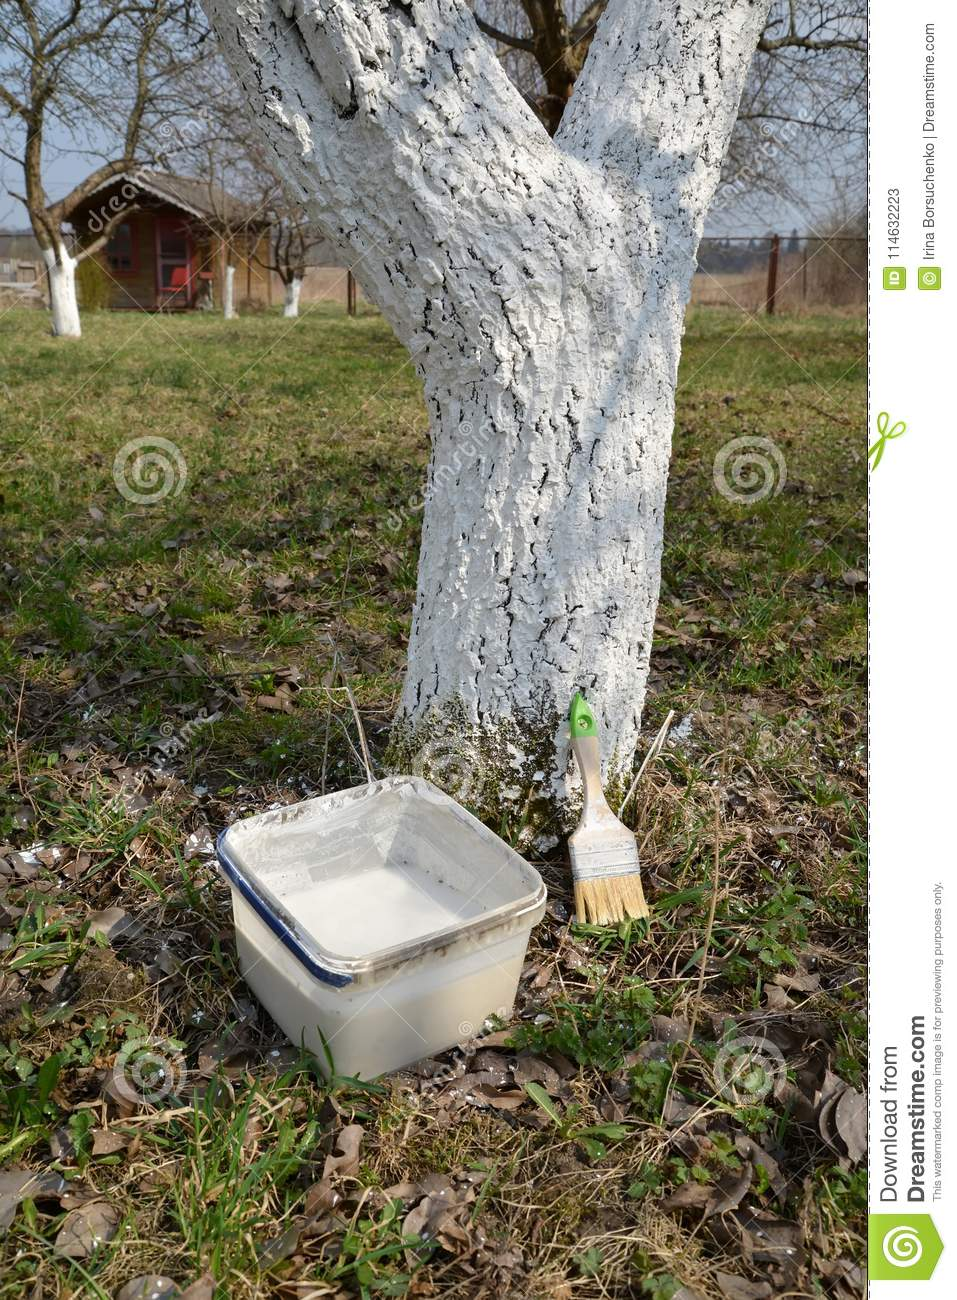 Materials For Whitewashing Of Fruit-trees About An Apple-tree Trunk ...